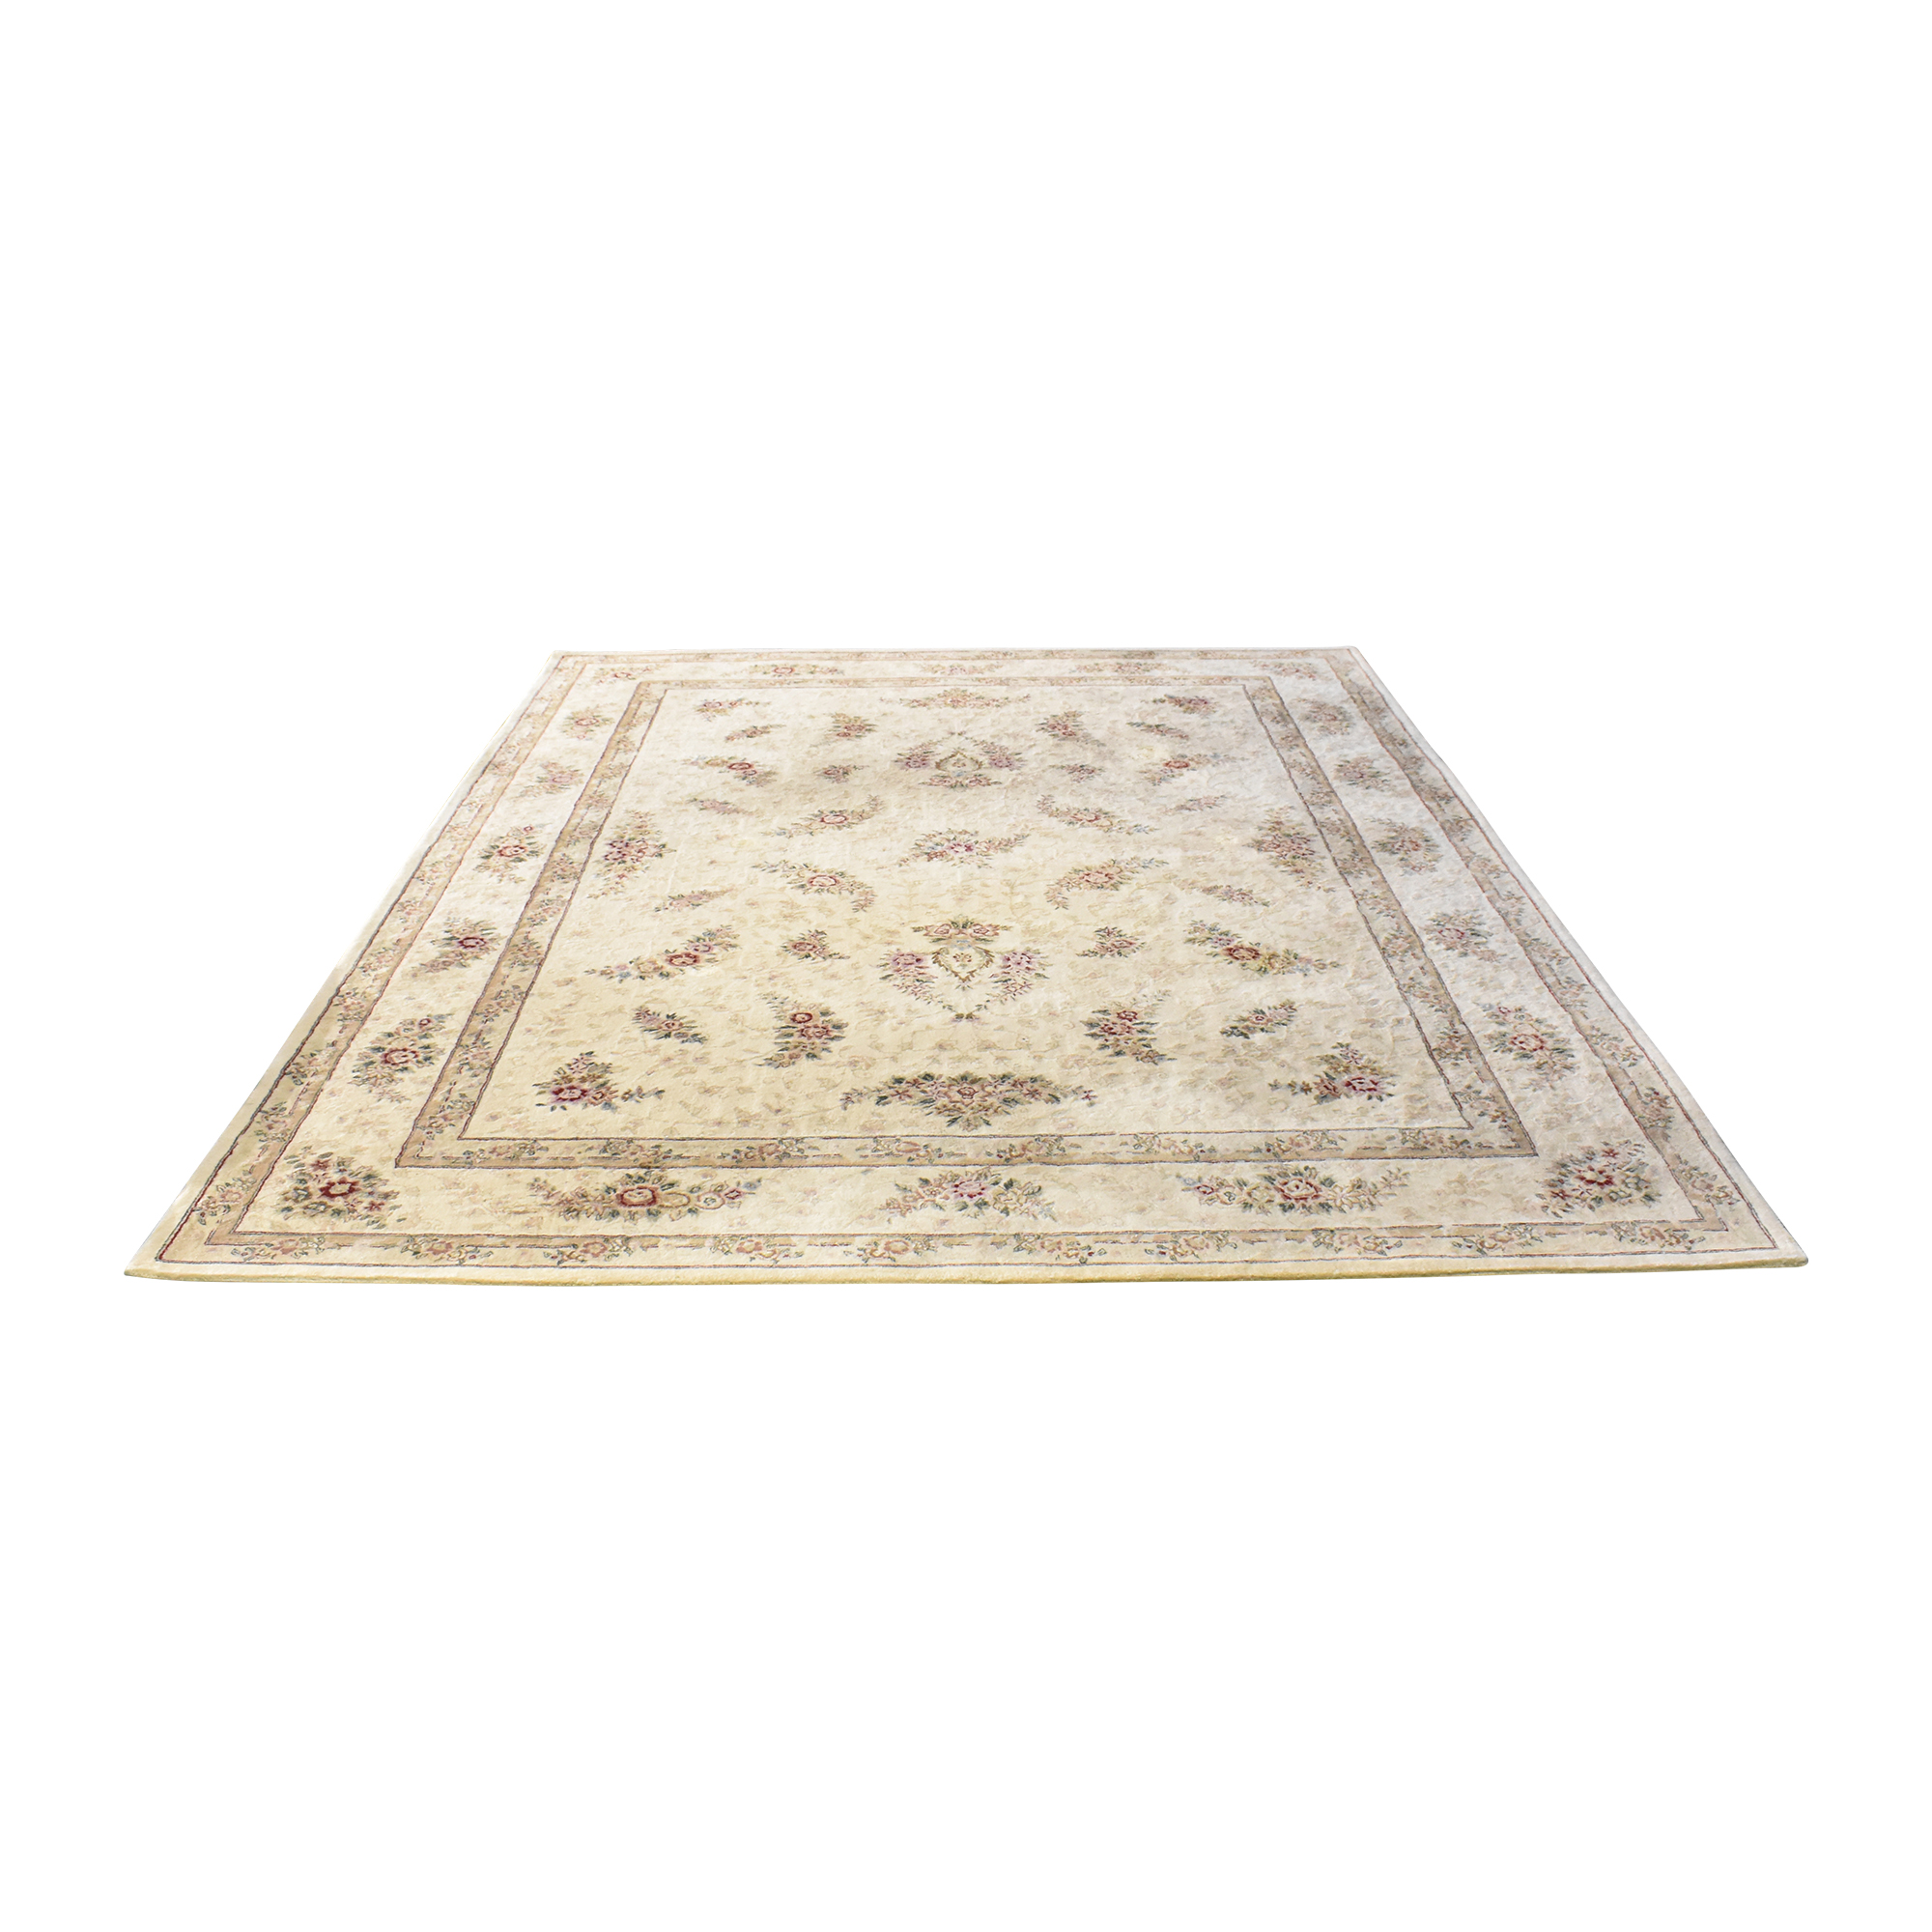 Floral Pattern Area Rug multi-colored